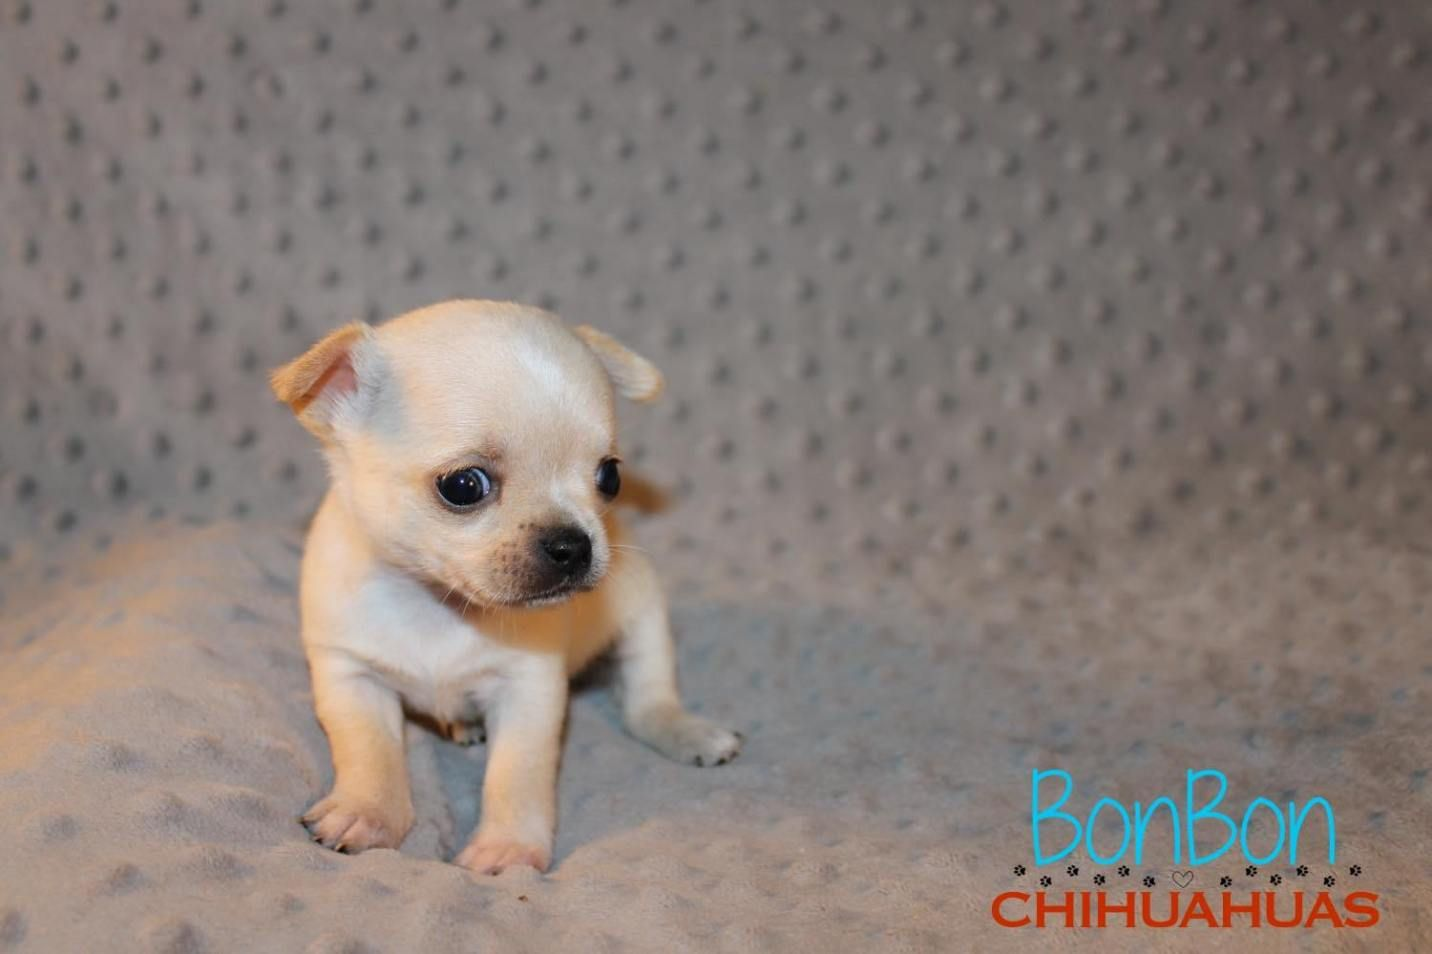 Chihuahua Puppies For Sale Chihuahua Puppies For Sale Chihuahua Puppies Chihuahua